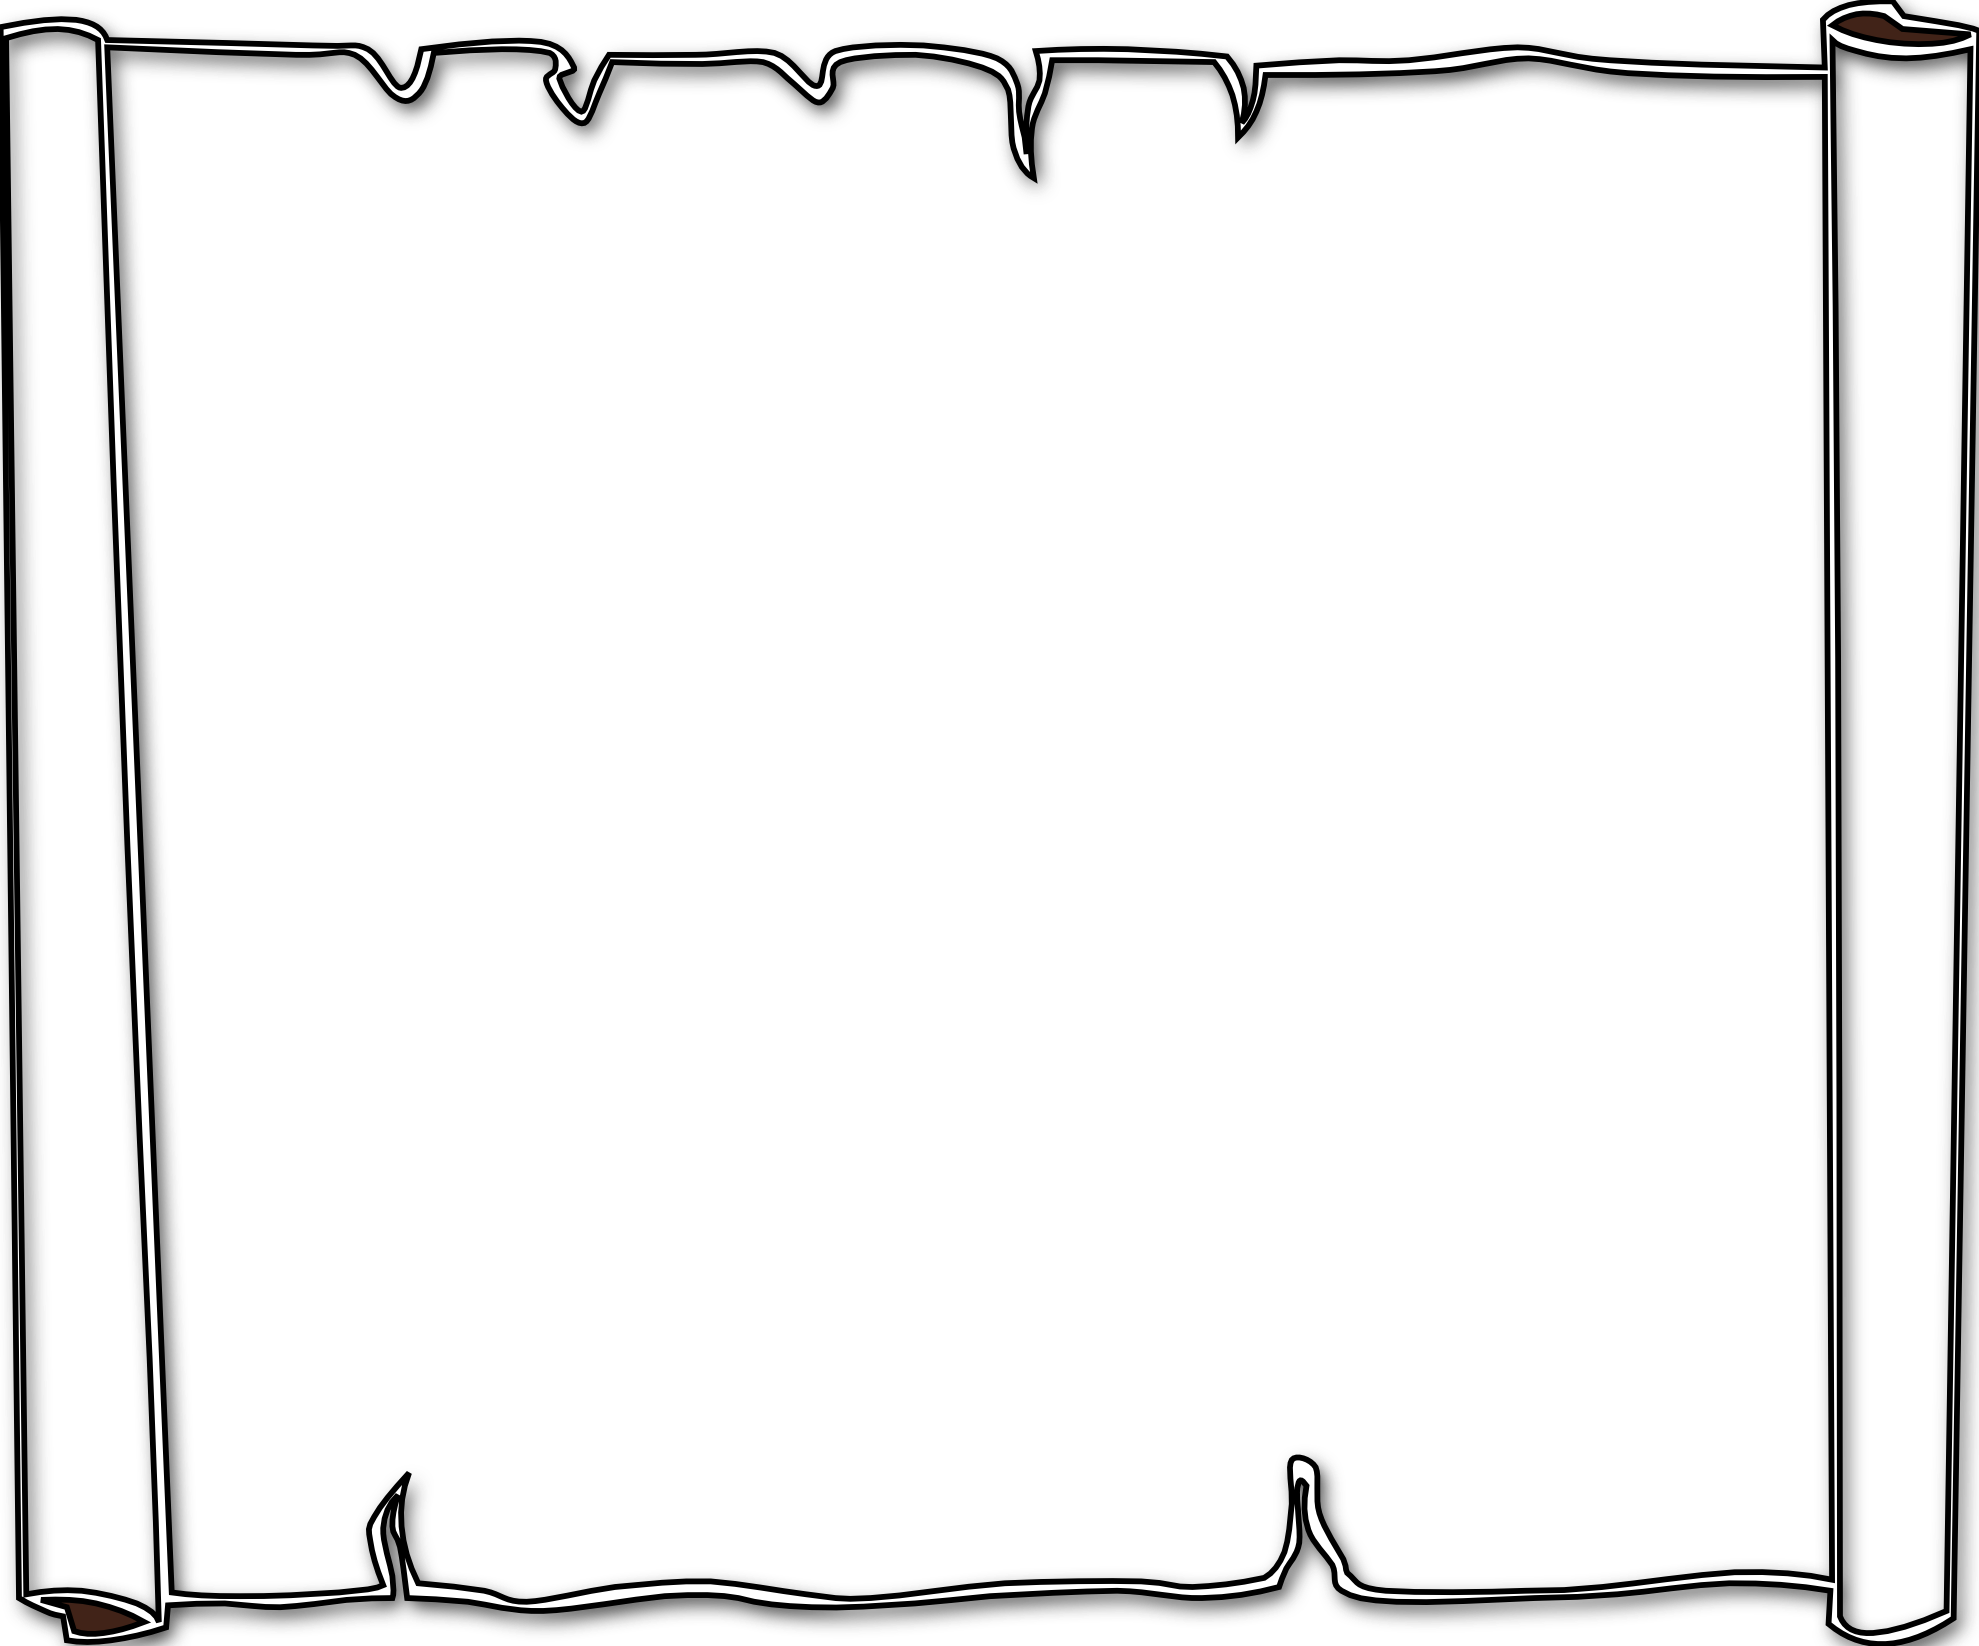 Line Art Border Designs : Simple line border clipart panda free